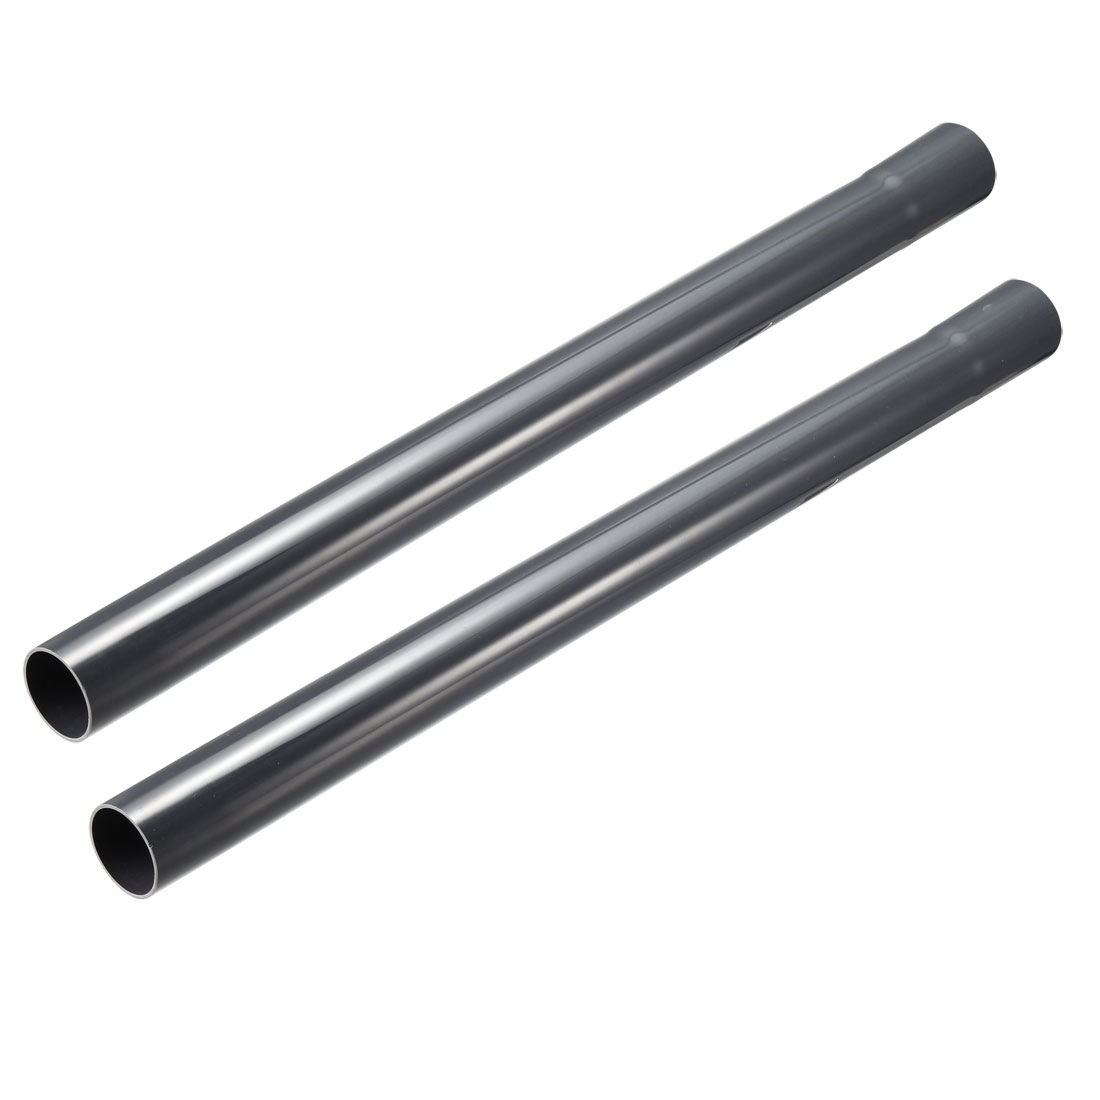 Extension Wand 32mm Plastic Tube 45cm Length Vacuum Cleaner Accessory Gray 2Pcs